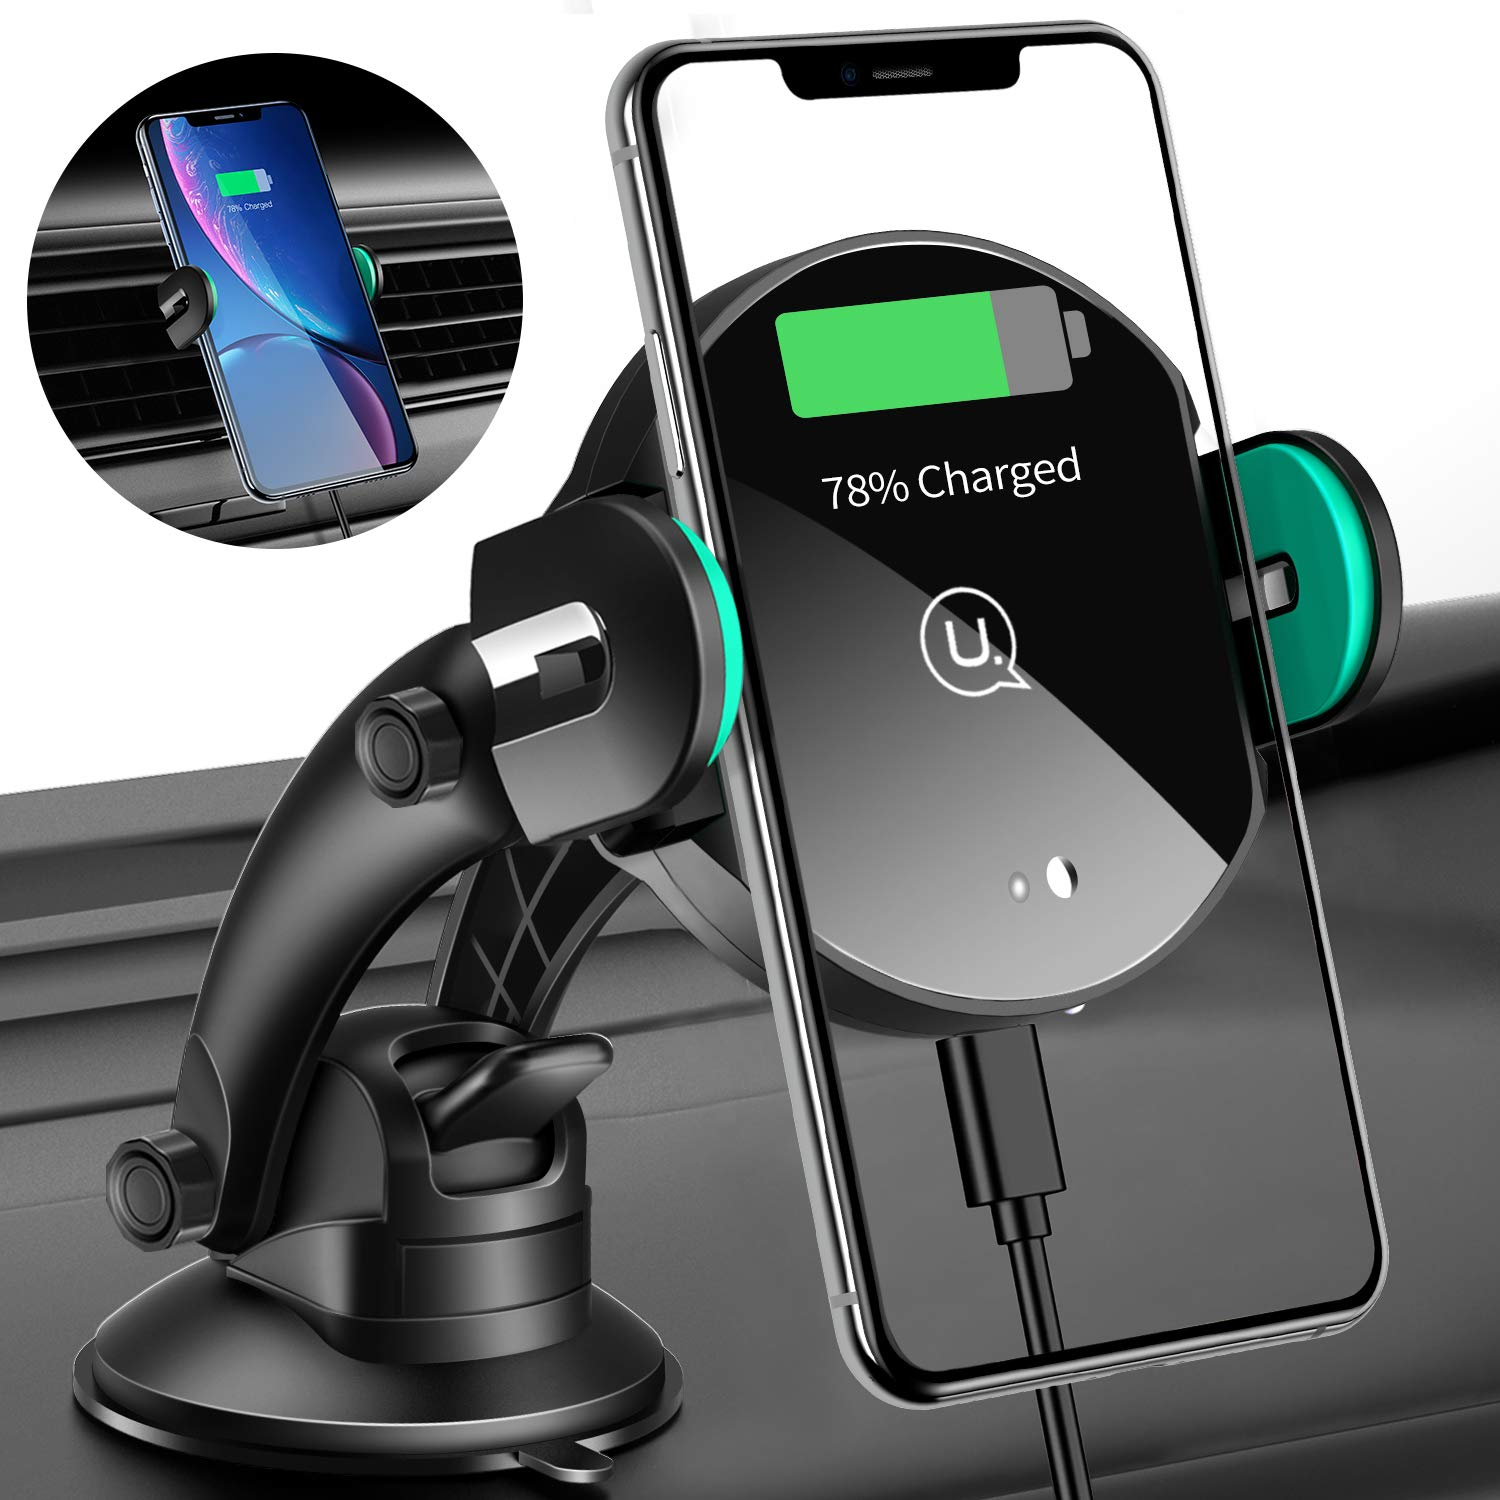 Wireless Car Charger USAMS 10W Qi Fast Charging Mount with Infrared Auto Clamping Windshield Dashboard Air Vent Phone Holder for iPhone X/XR/XS Max/8/8 Plus Samsung Note 9/8 S10/S10+/S9+ S8+ (Black2)